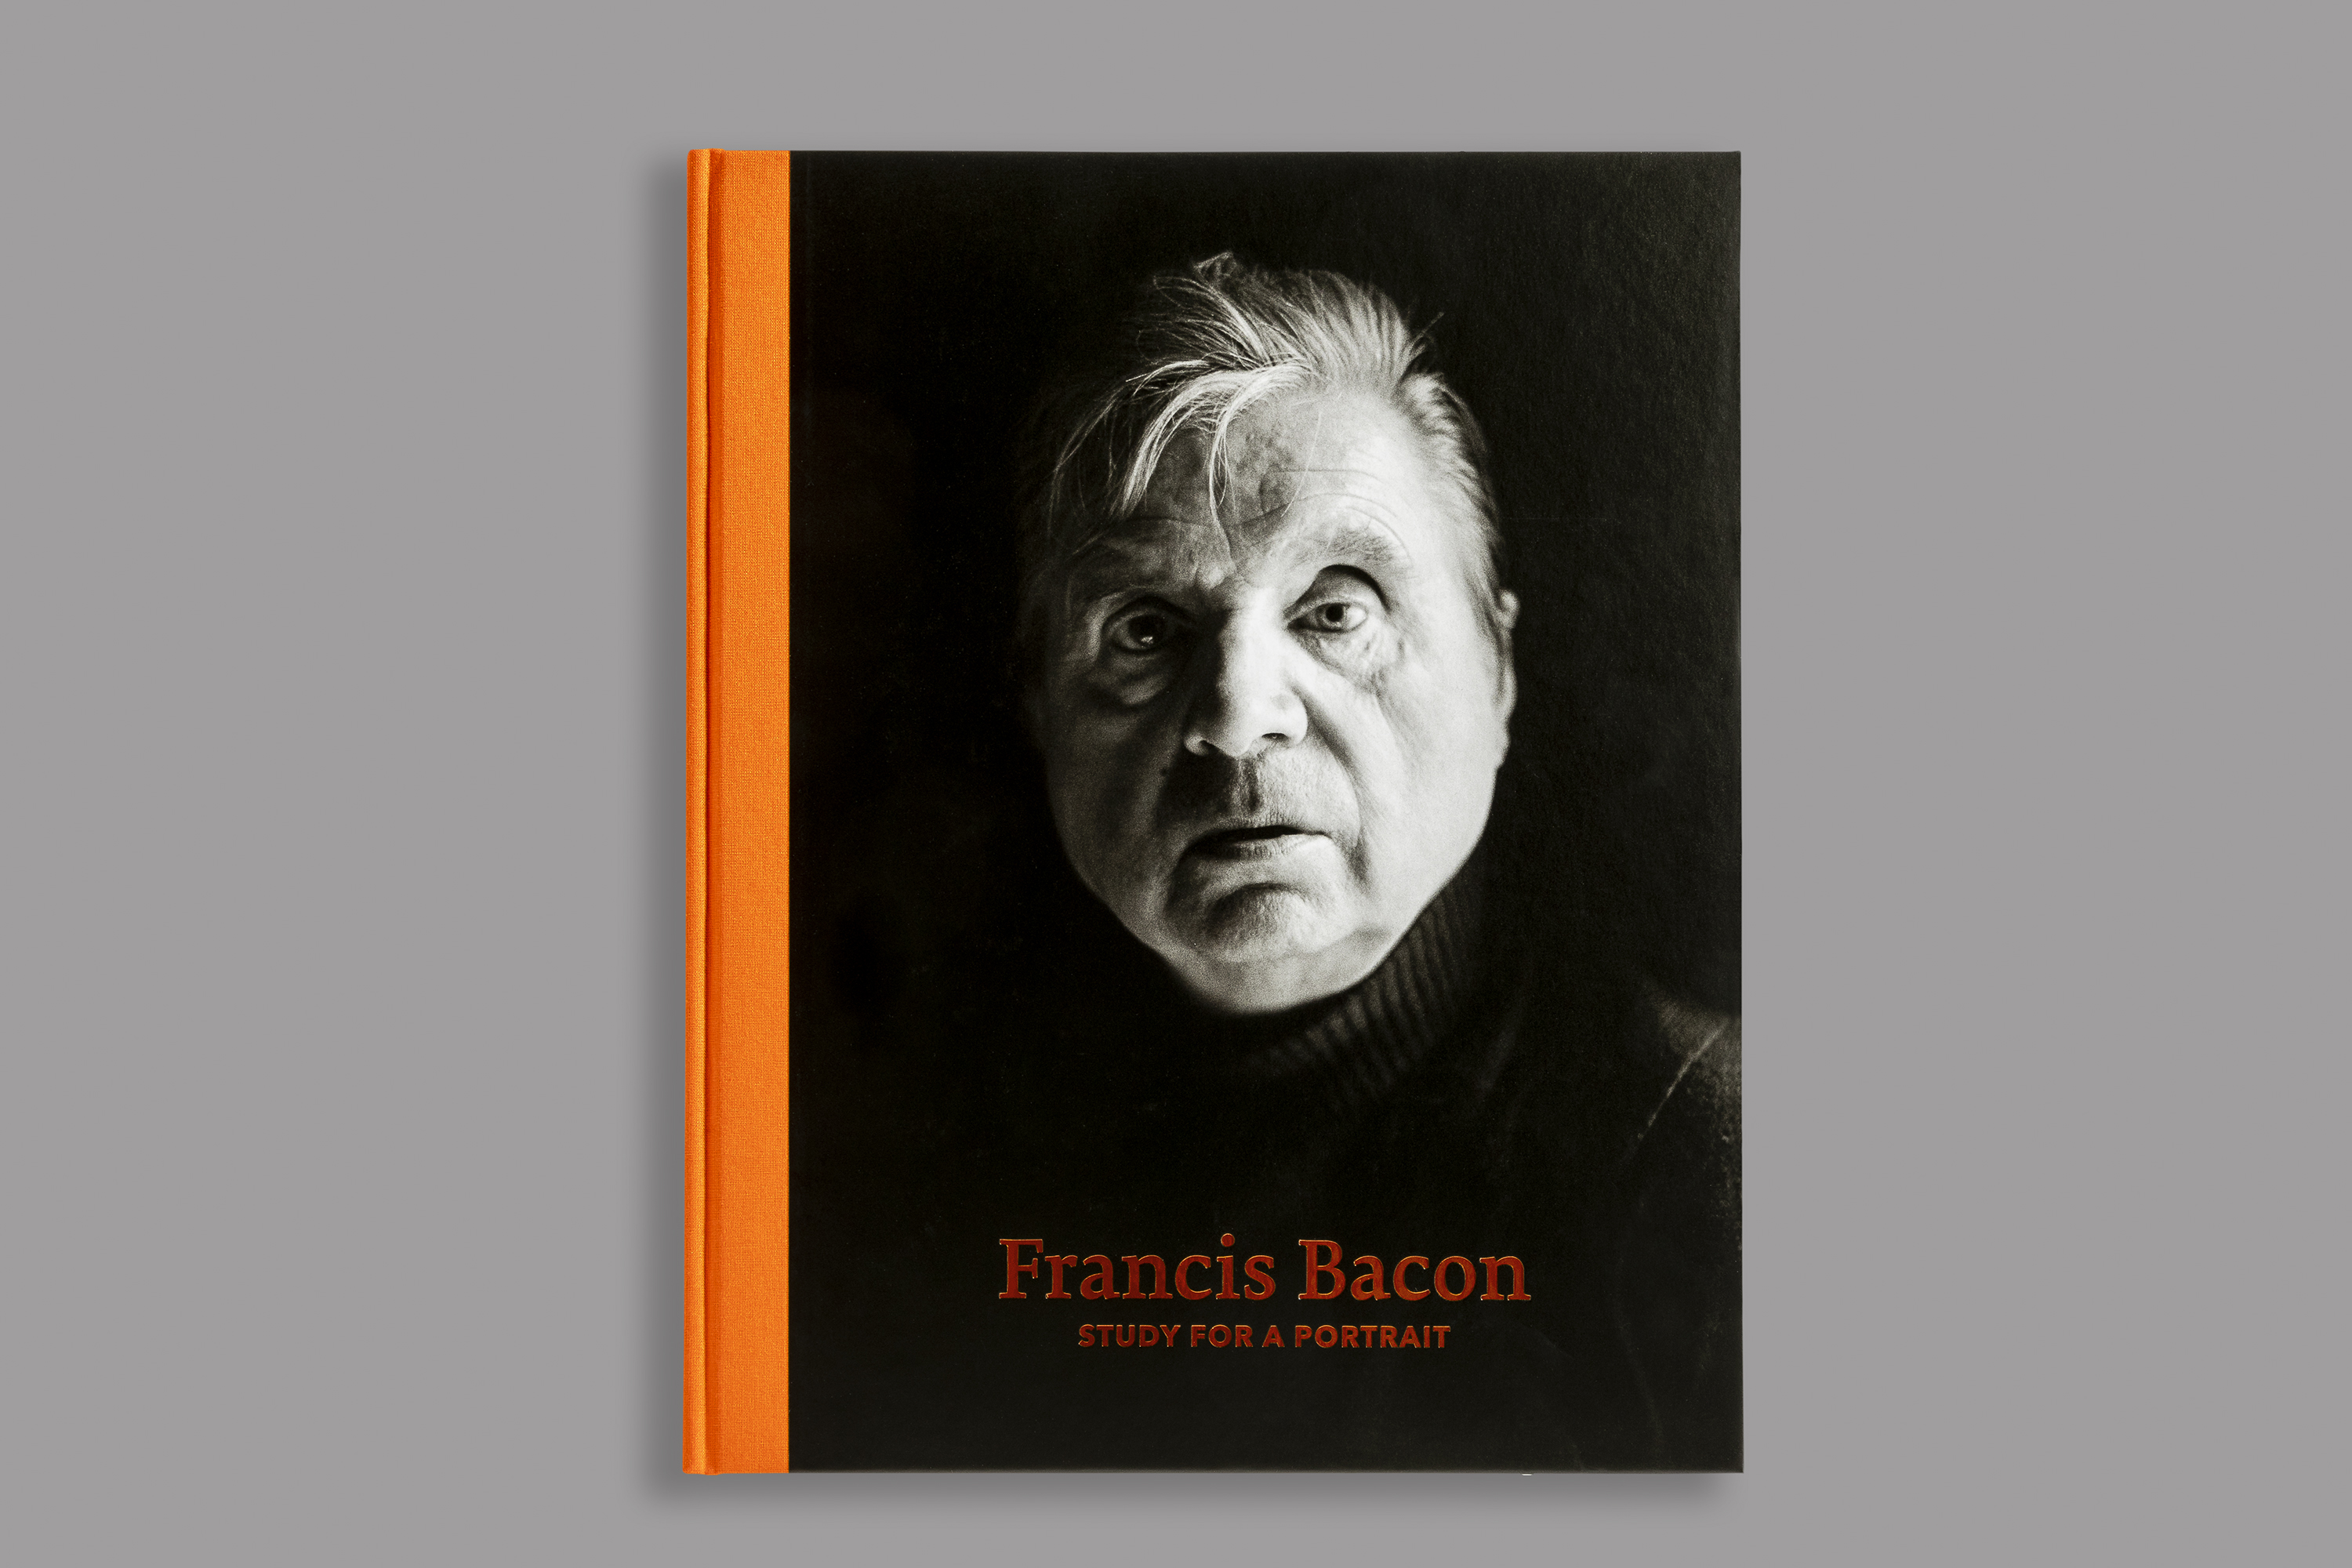 Francis Bacon: Study for a Portrait, 2019. © The Francis Bacon MB Art Foundation, Monaco, 2019. All rights reserved.